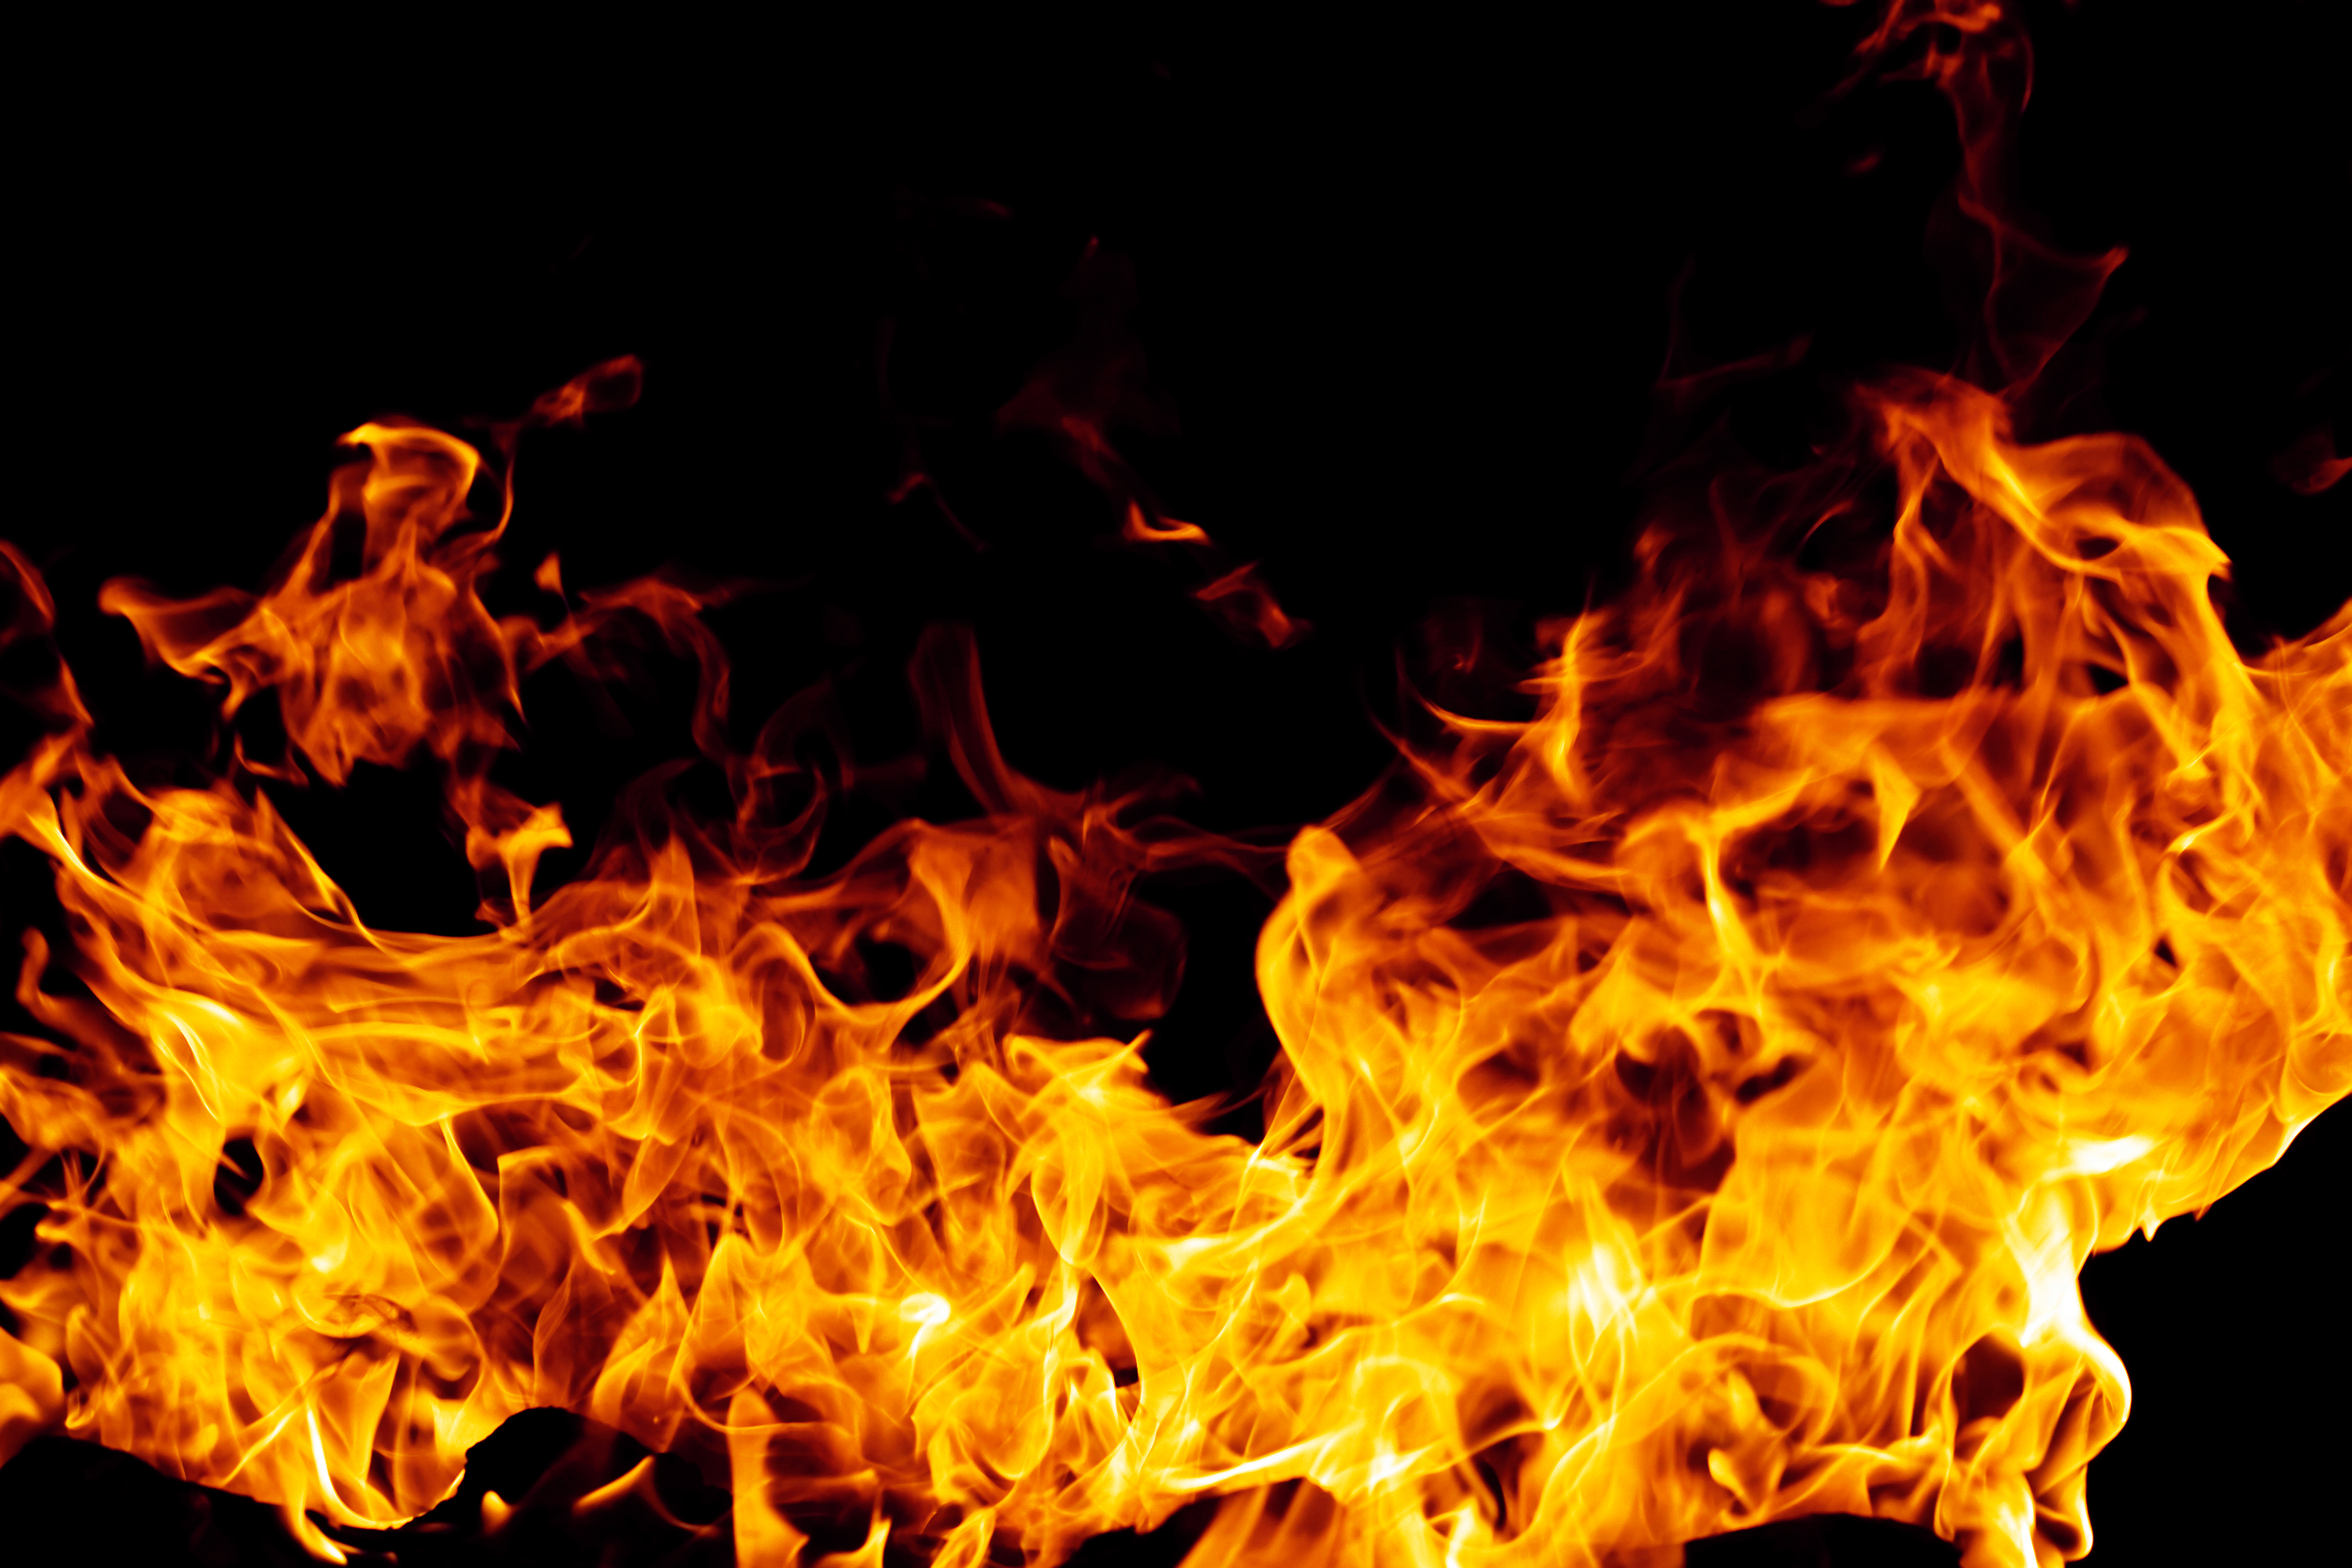 Fire flames, Barbecue, Fire, Wallpaper, Hell, HQ Photo